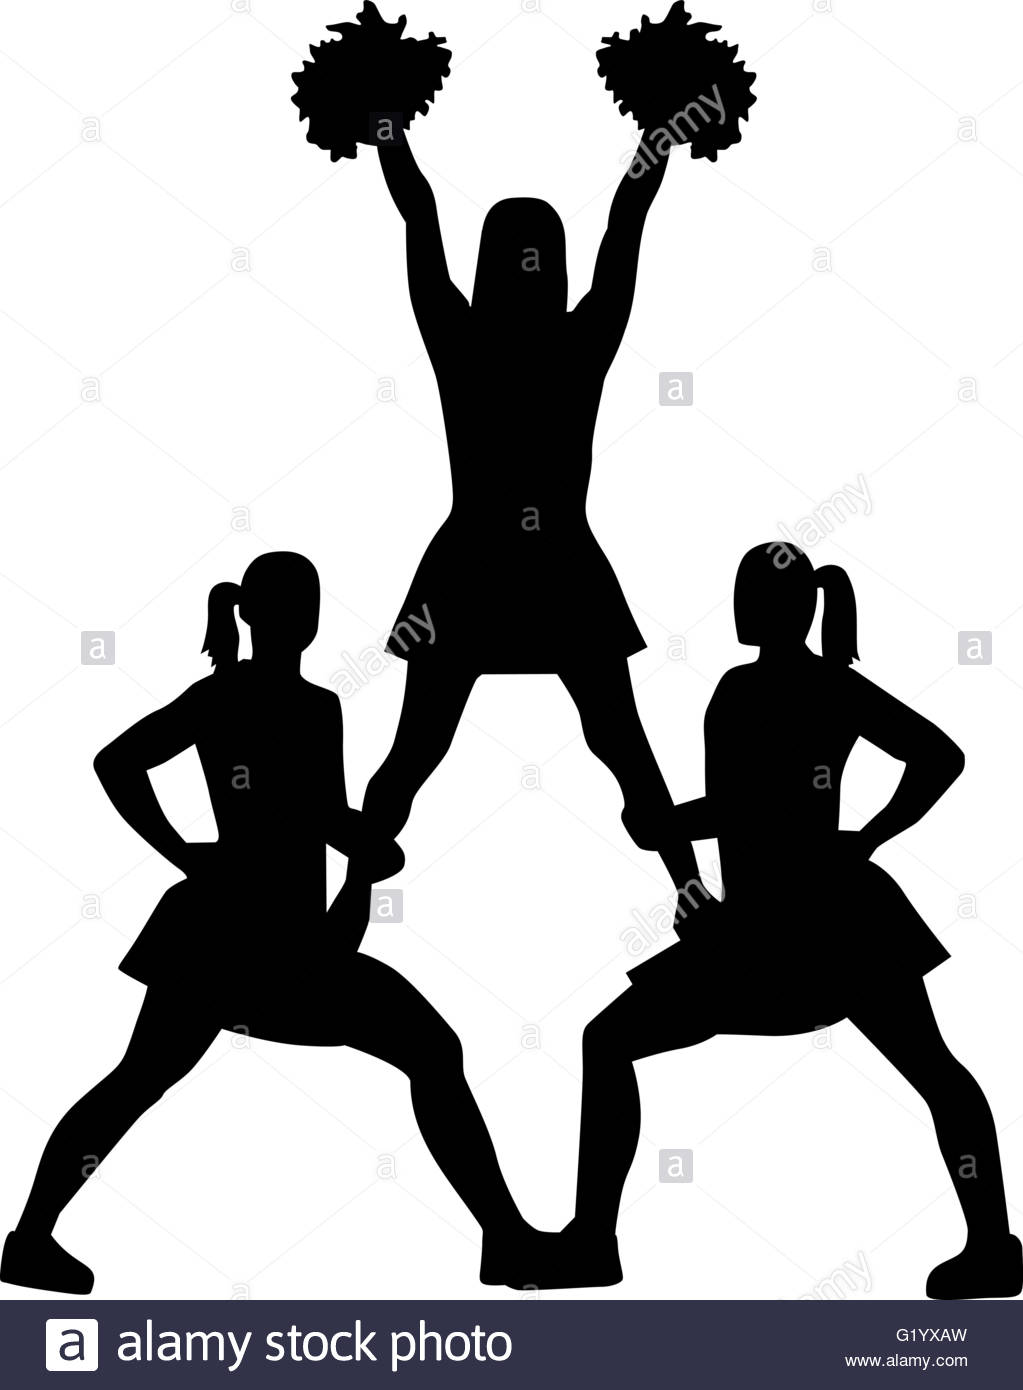 1023x1390 Cheerleading Pyramid Silhouette Stock Vector Art Amp Illustration